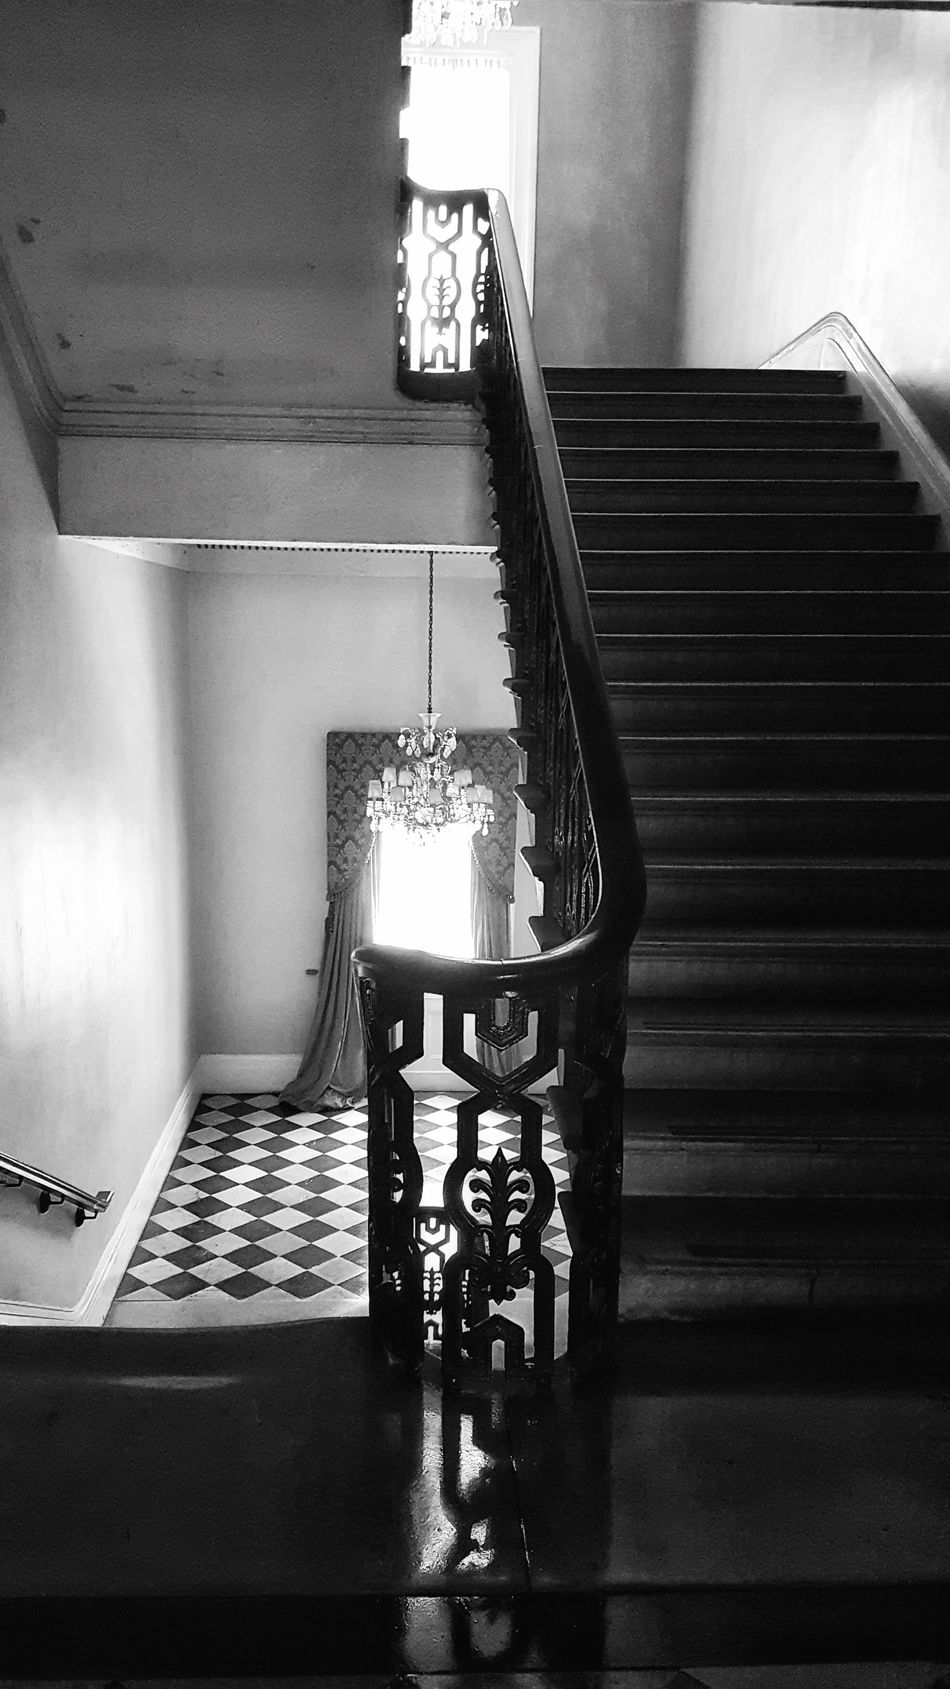 Taking Photos Check This Out Old New Orleans Black & White New Orleans Black And White Photography Vintage Building Stairs_collection Gallier Hall 2nd Floor Chandeliers Window Light Floors Patterns Marble Stairs